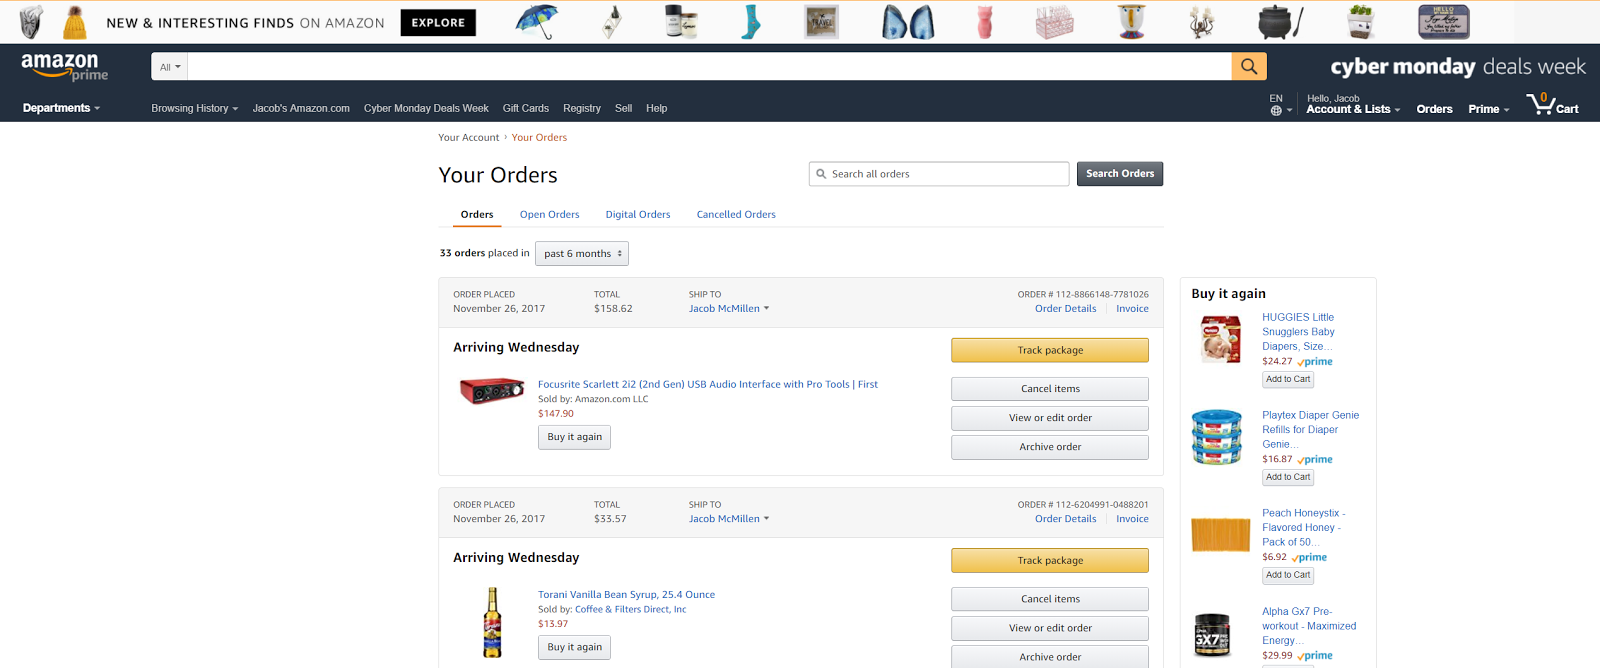 Even when checking the status of your orders, Amazon asks you to buy it. Again.